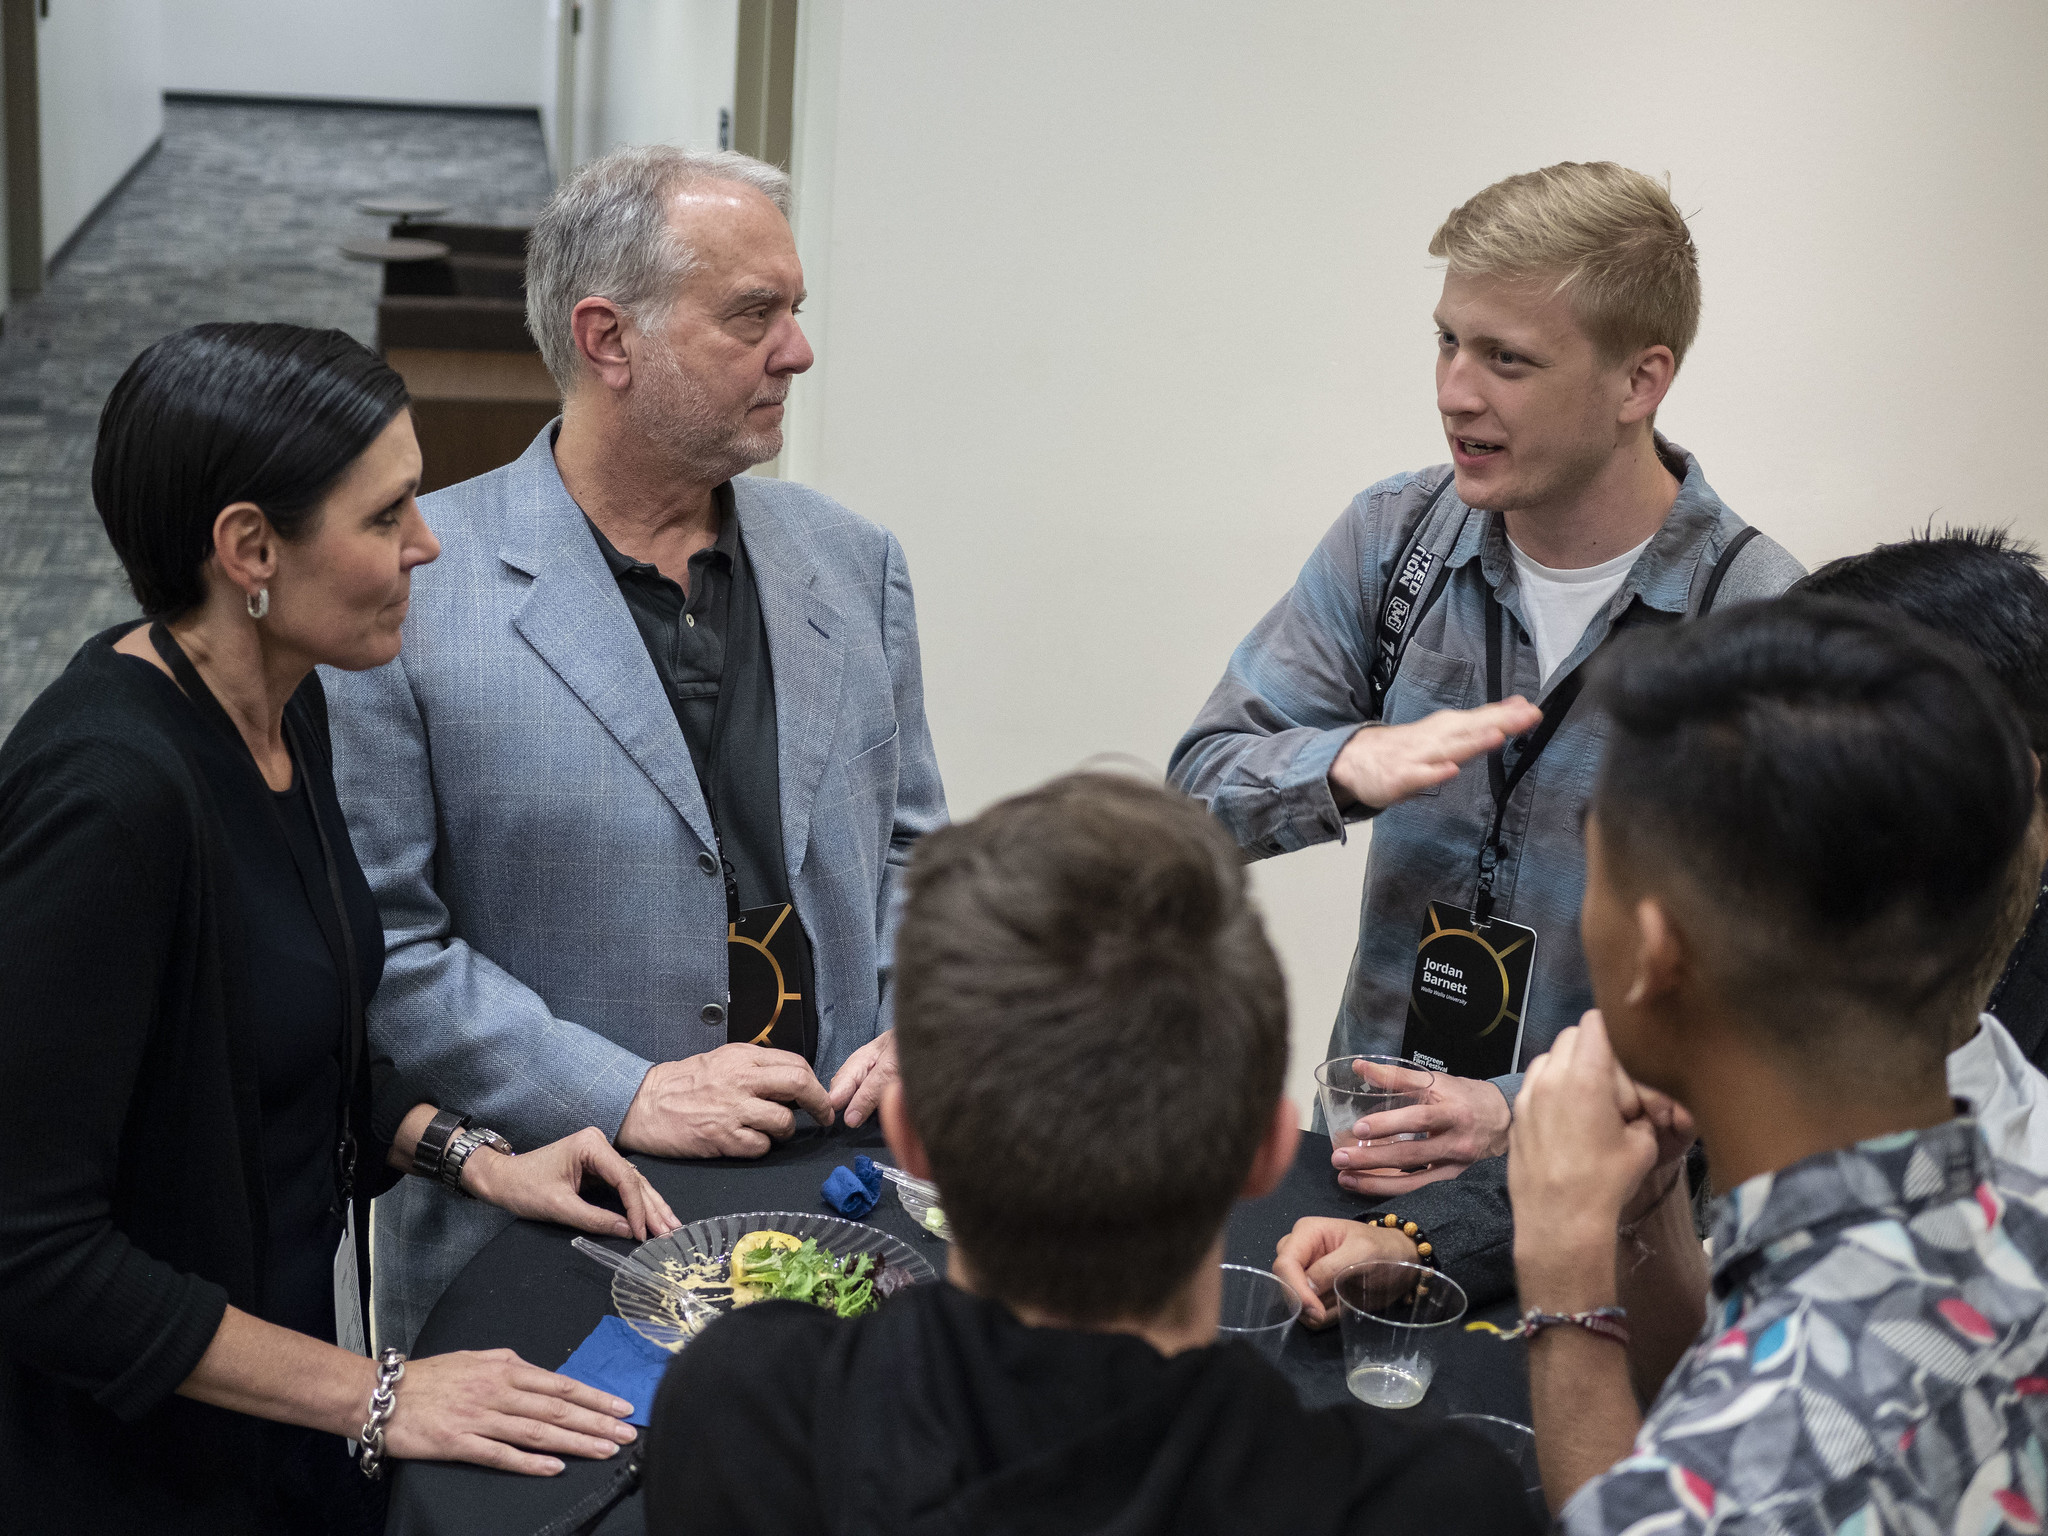 Tatia and Chris Cibelli, professional film editors, talk to student filmmakers during a meal break at the 2019 Sonscreen Film Festival.